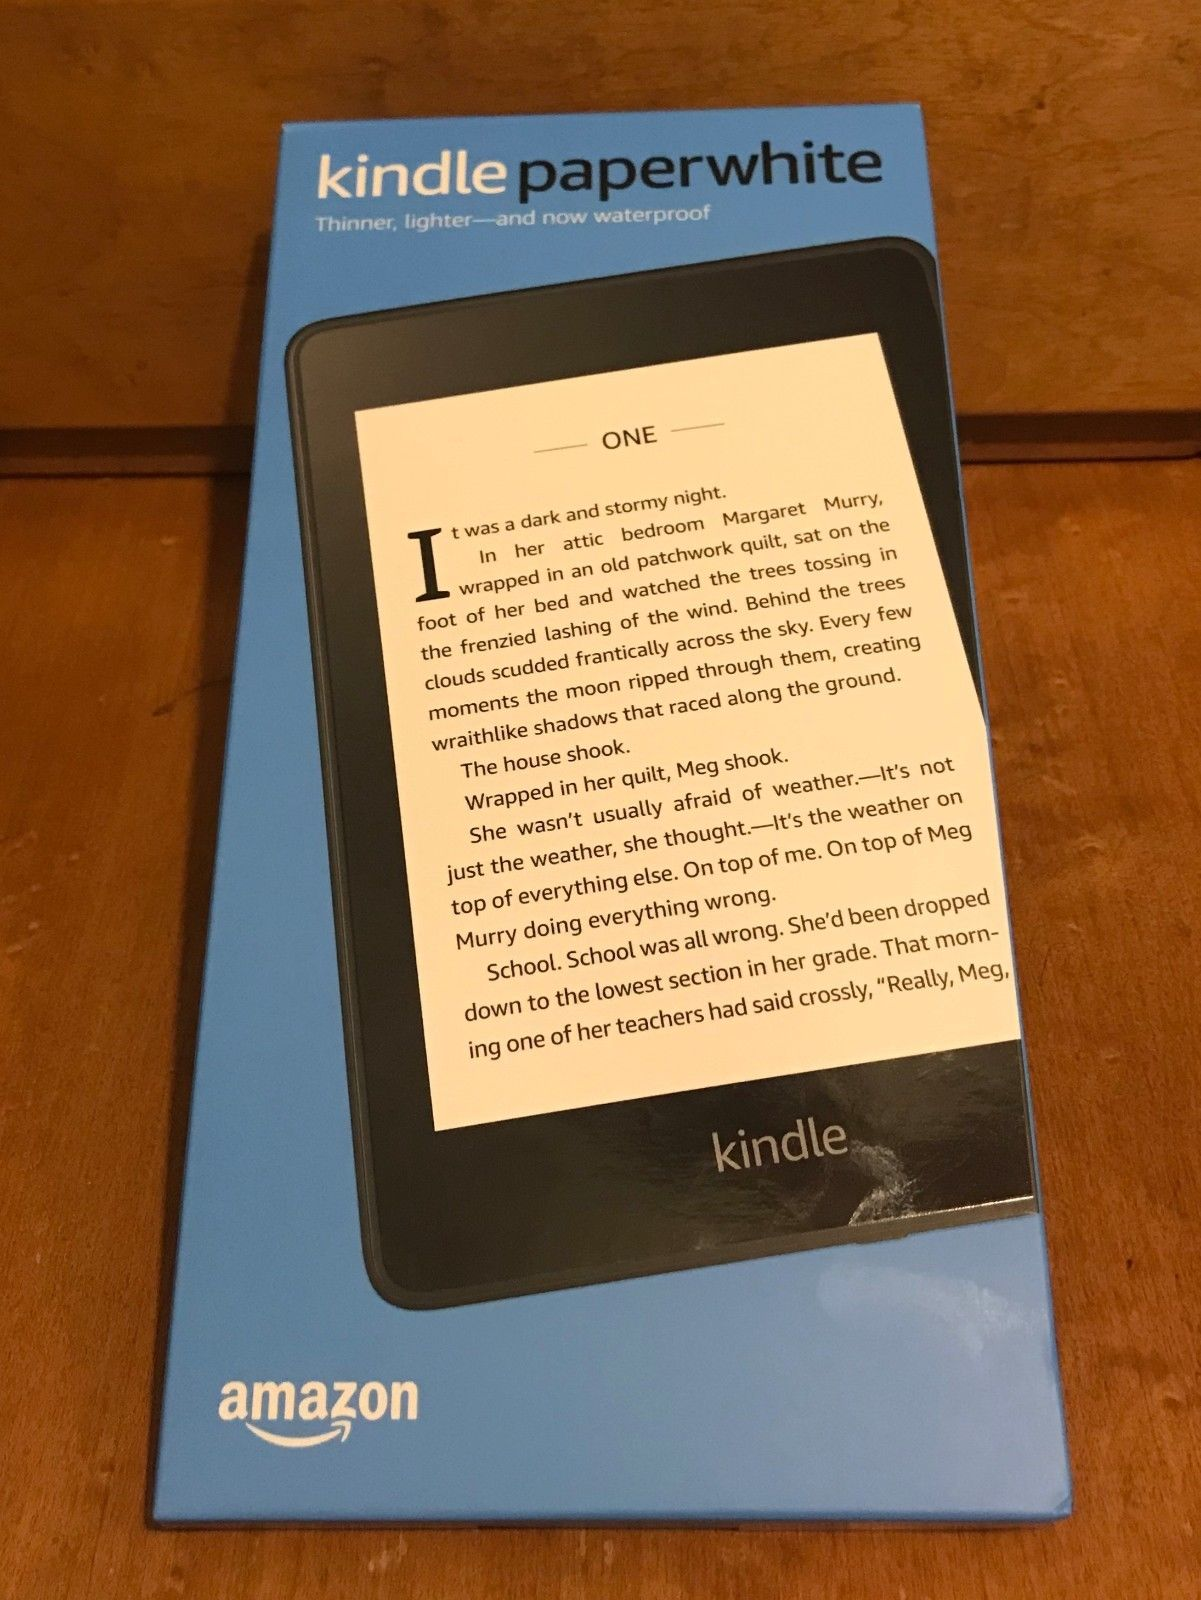 Amazon Kindle Details About Amazon Kindle Paperwhite 10th Generation 8gb Wi Fi W Special Offers Brand New